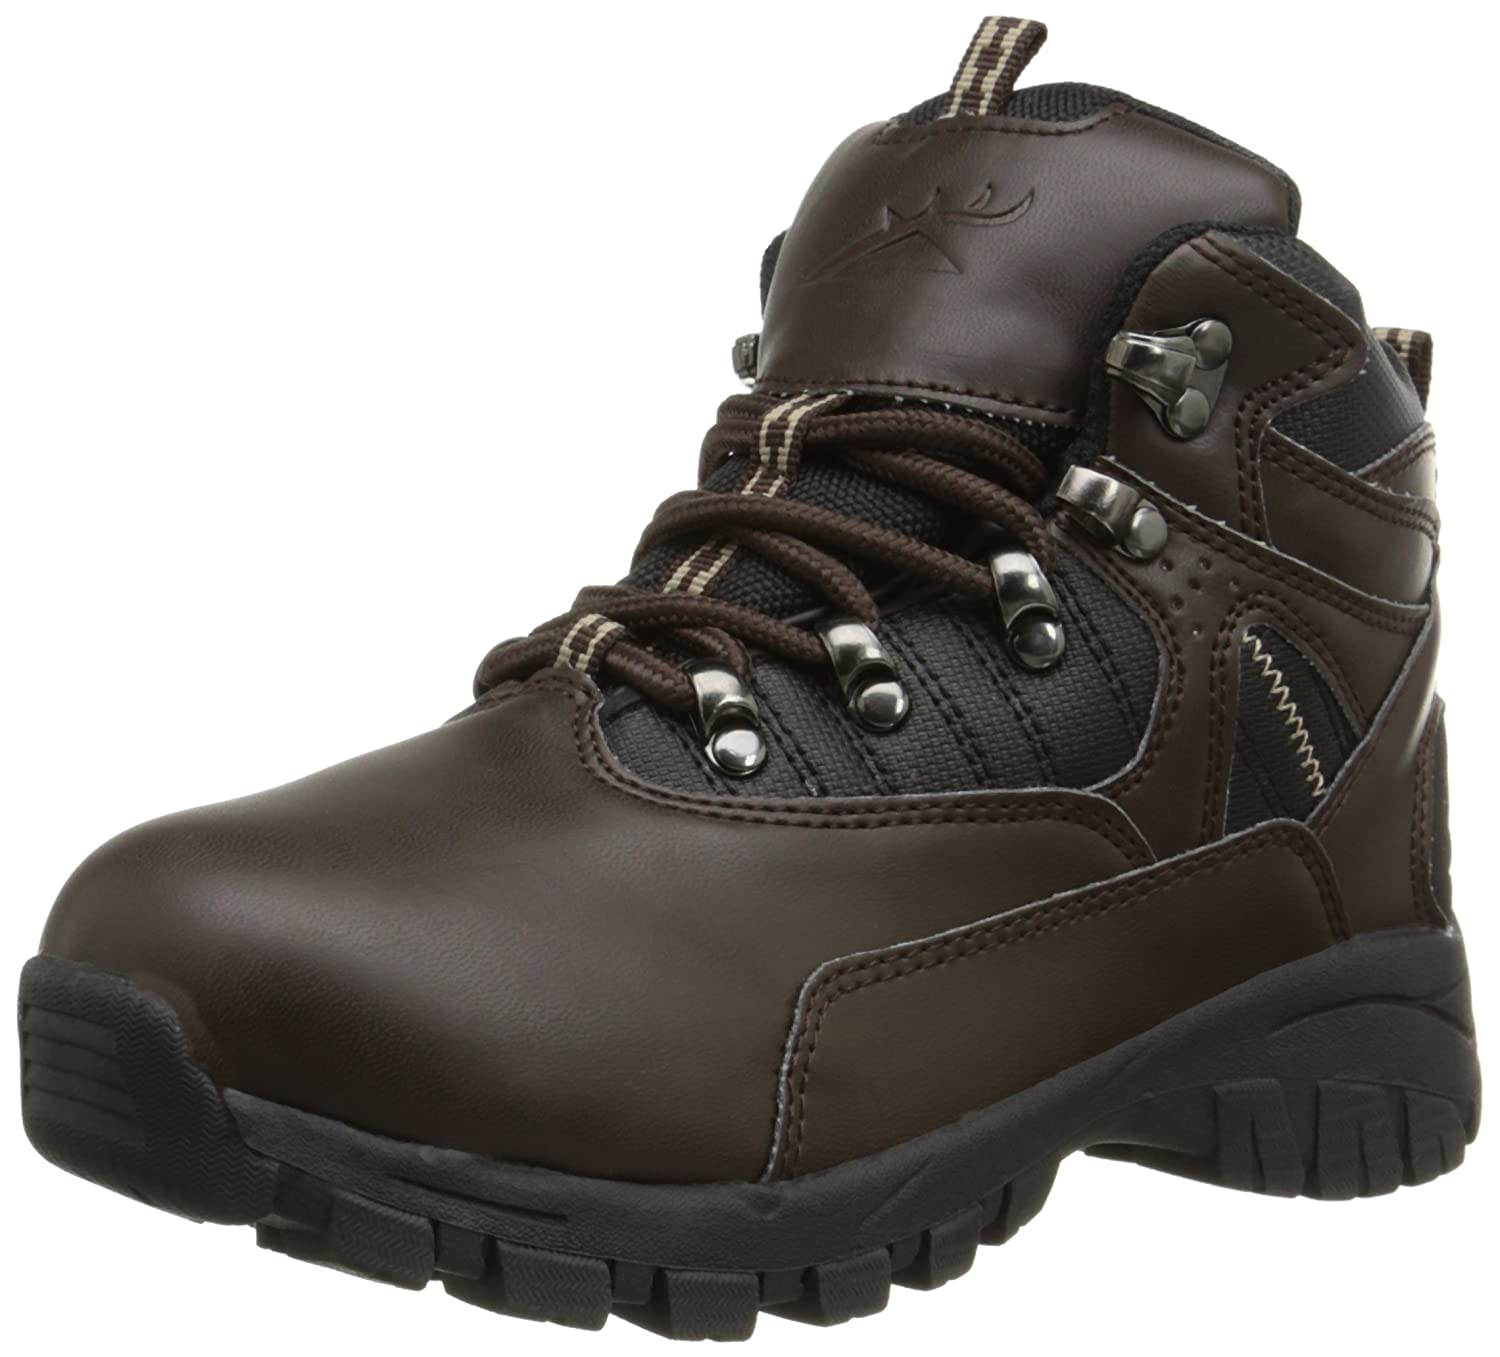 Deer Stags Hector Hiker Boot (Little Kid/Big Kid) HECTOR - K